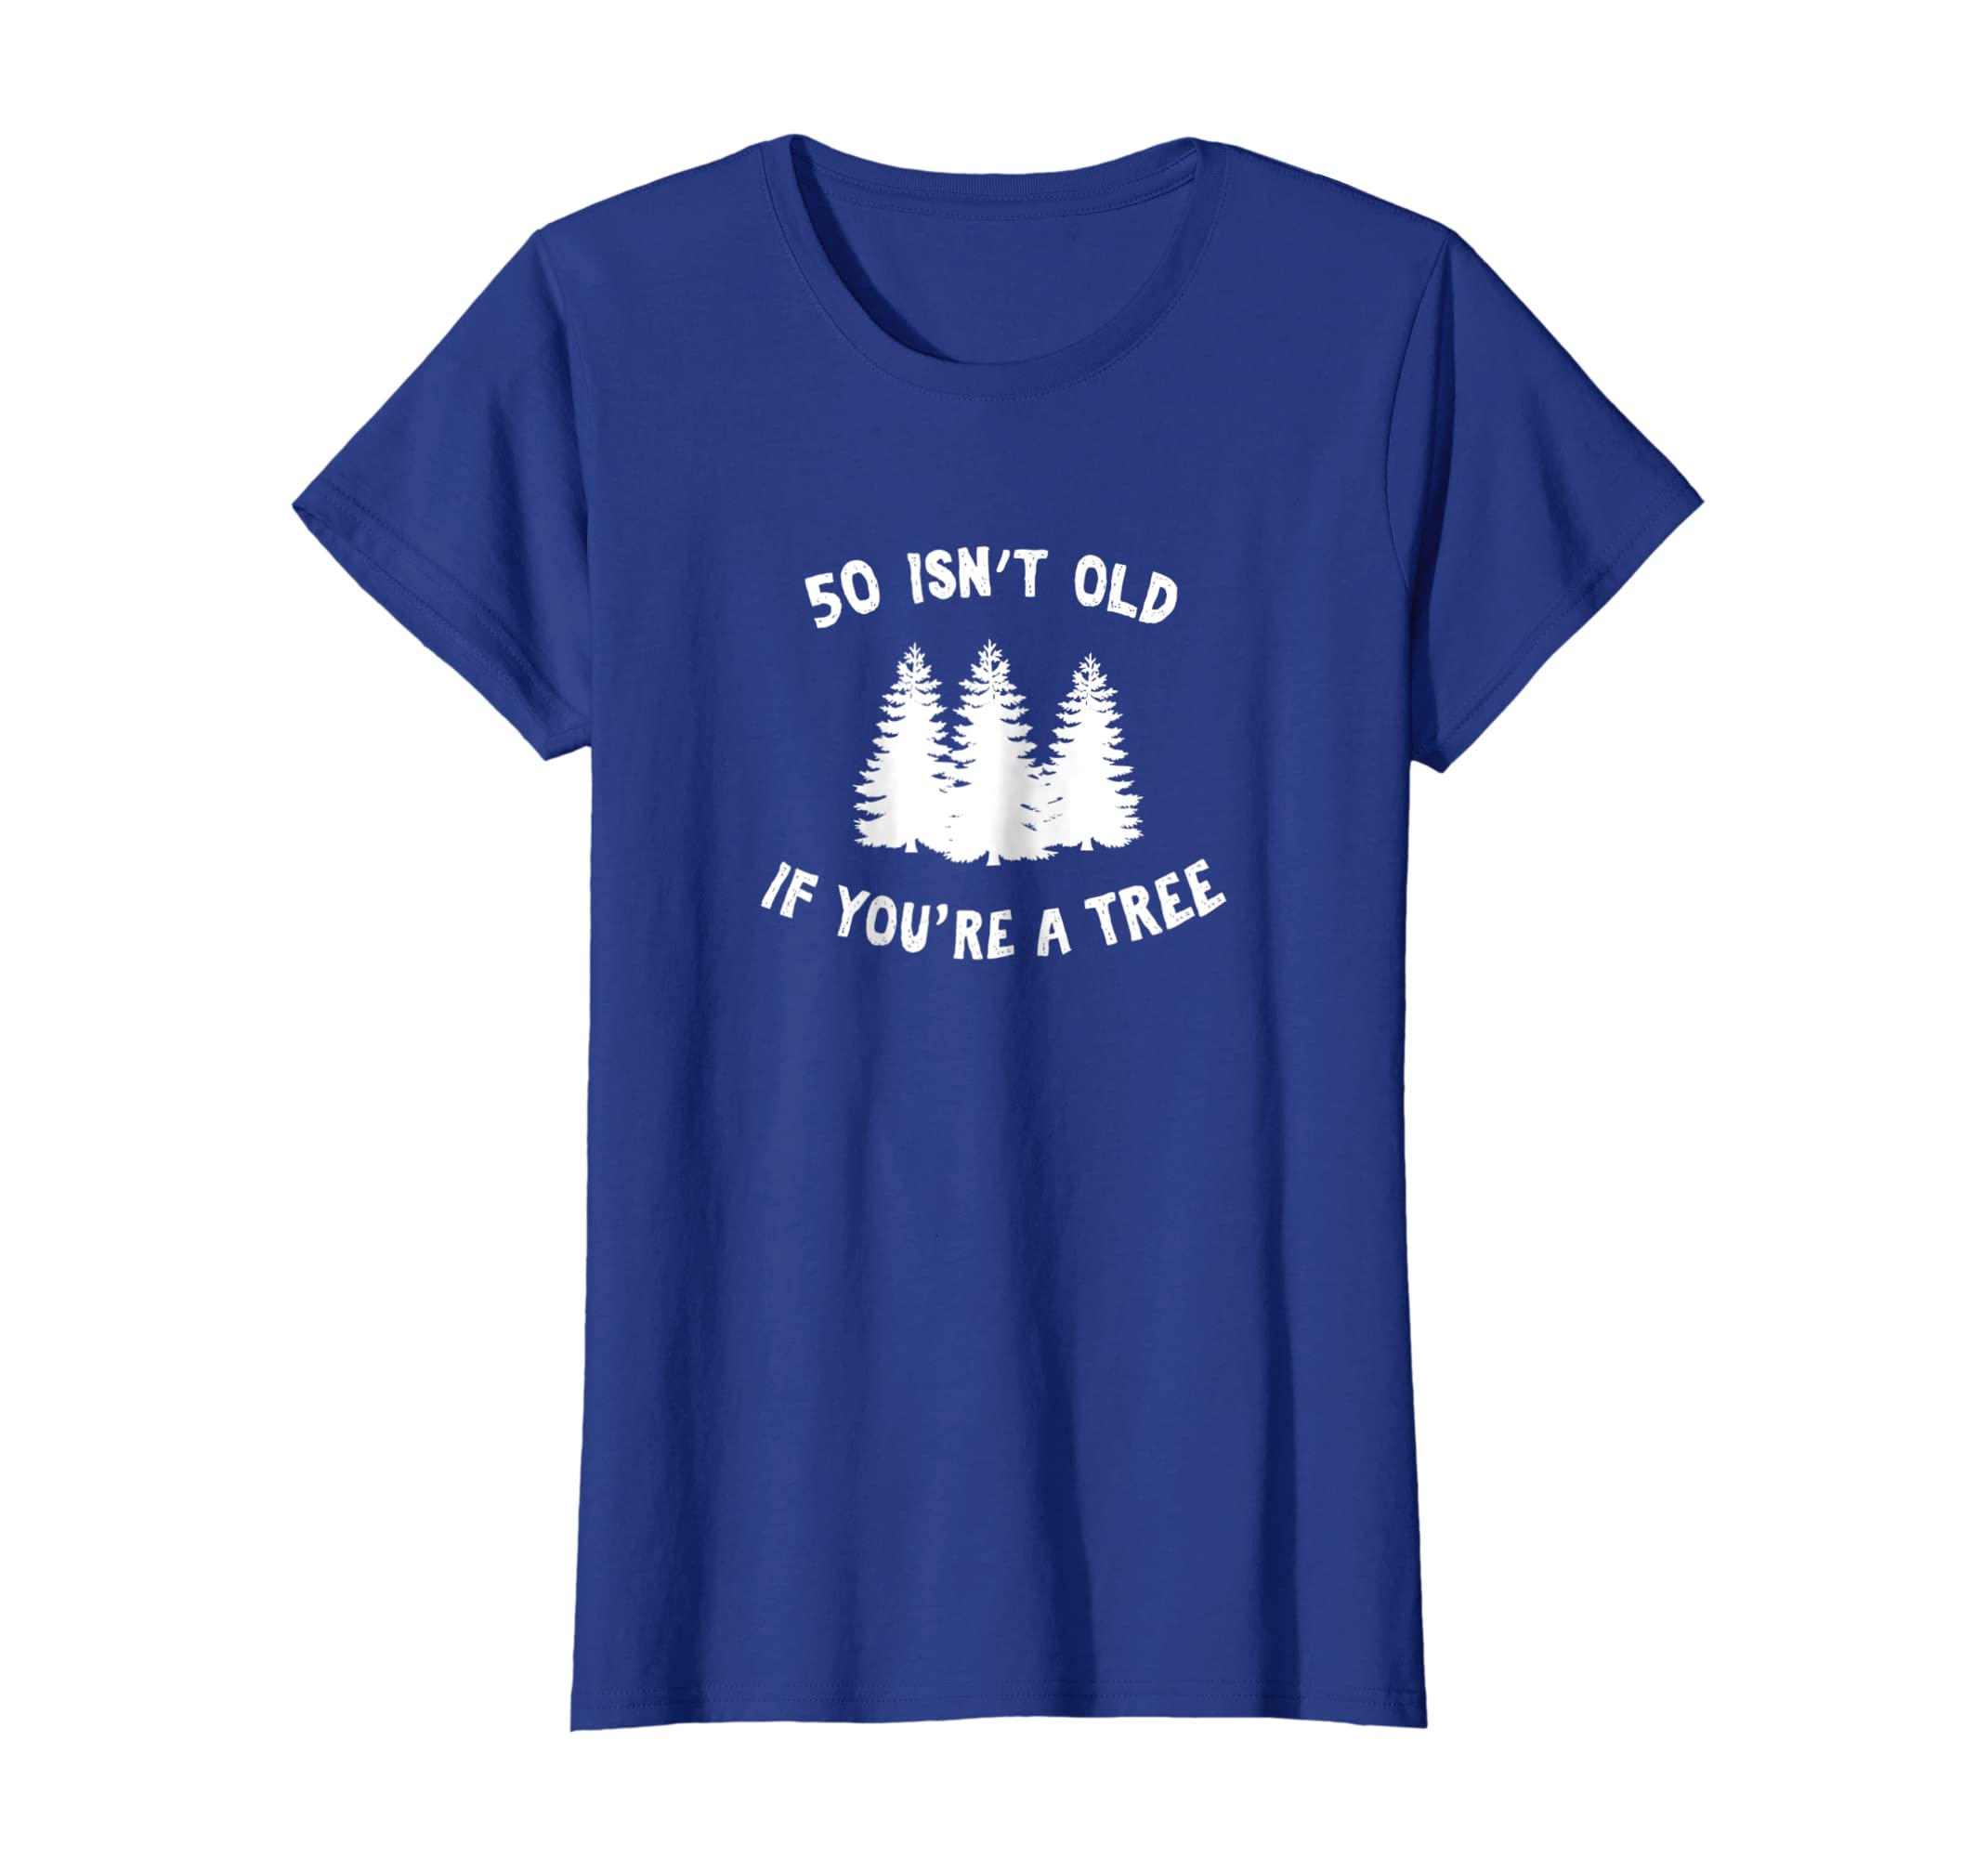 Amazon 50 Isnt Old If Youre A Tree Sarcastic Group Party T Shirt Clothing